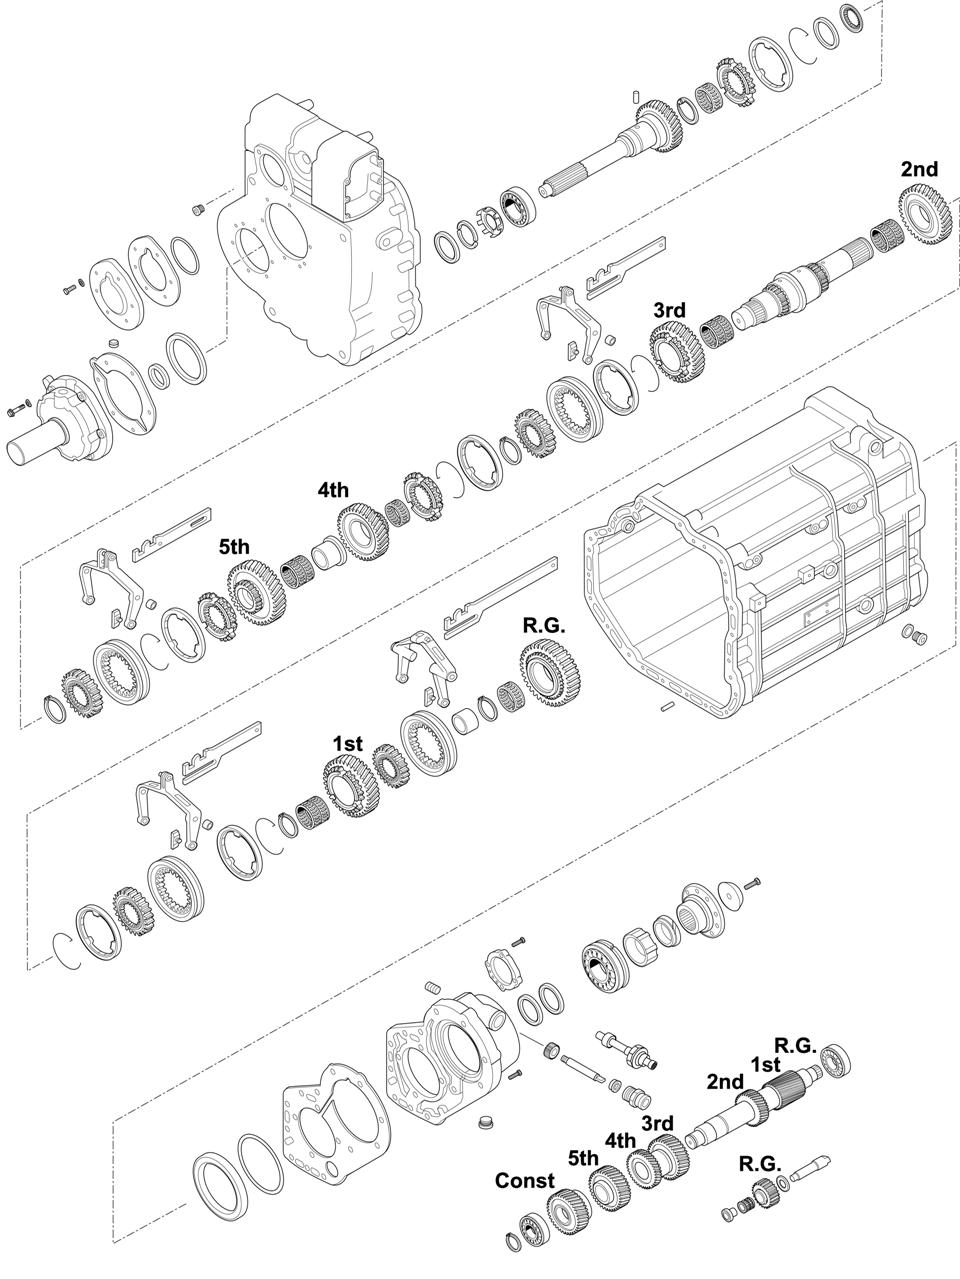 For Gearbox Series: 714.622-667 GO4/130-6/7,18 CHASSIS: 356.XXX - 600.XXX DUSES CHASSIS: 615/616/617/619/621/624/650/651/652/653/654/655/656 MK and SK CHASSIS: 676.XXX - 677.XXX LK